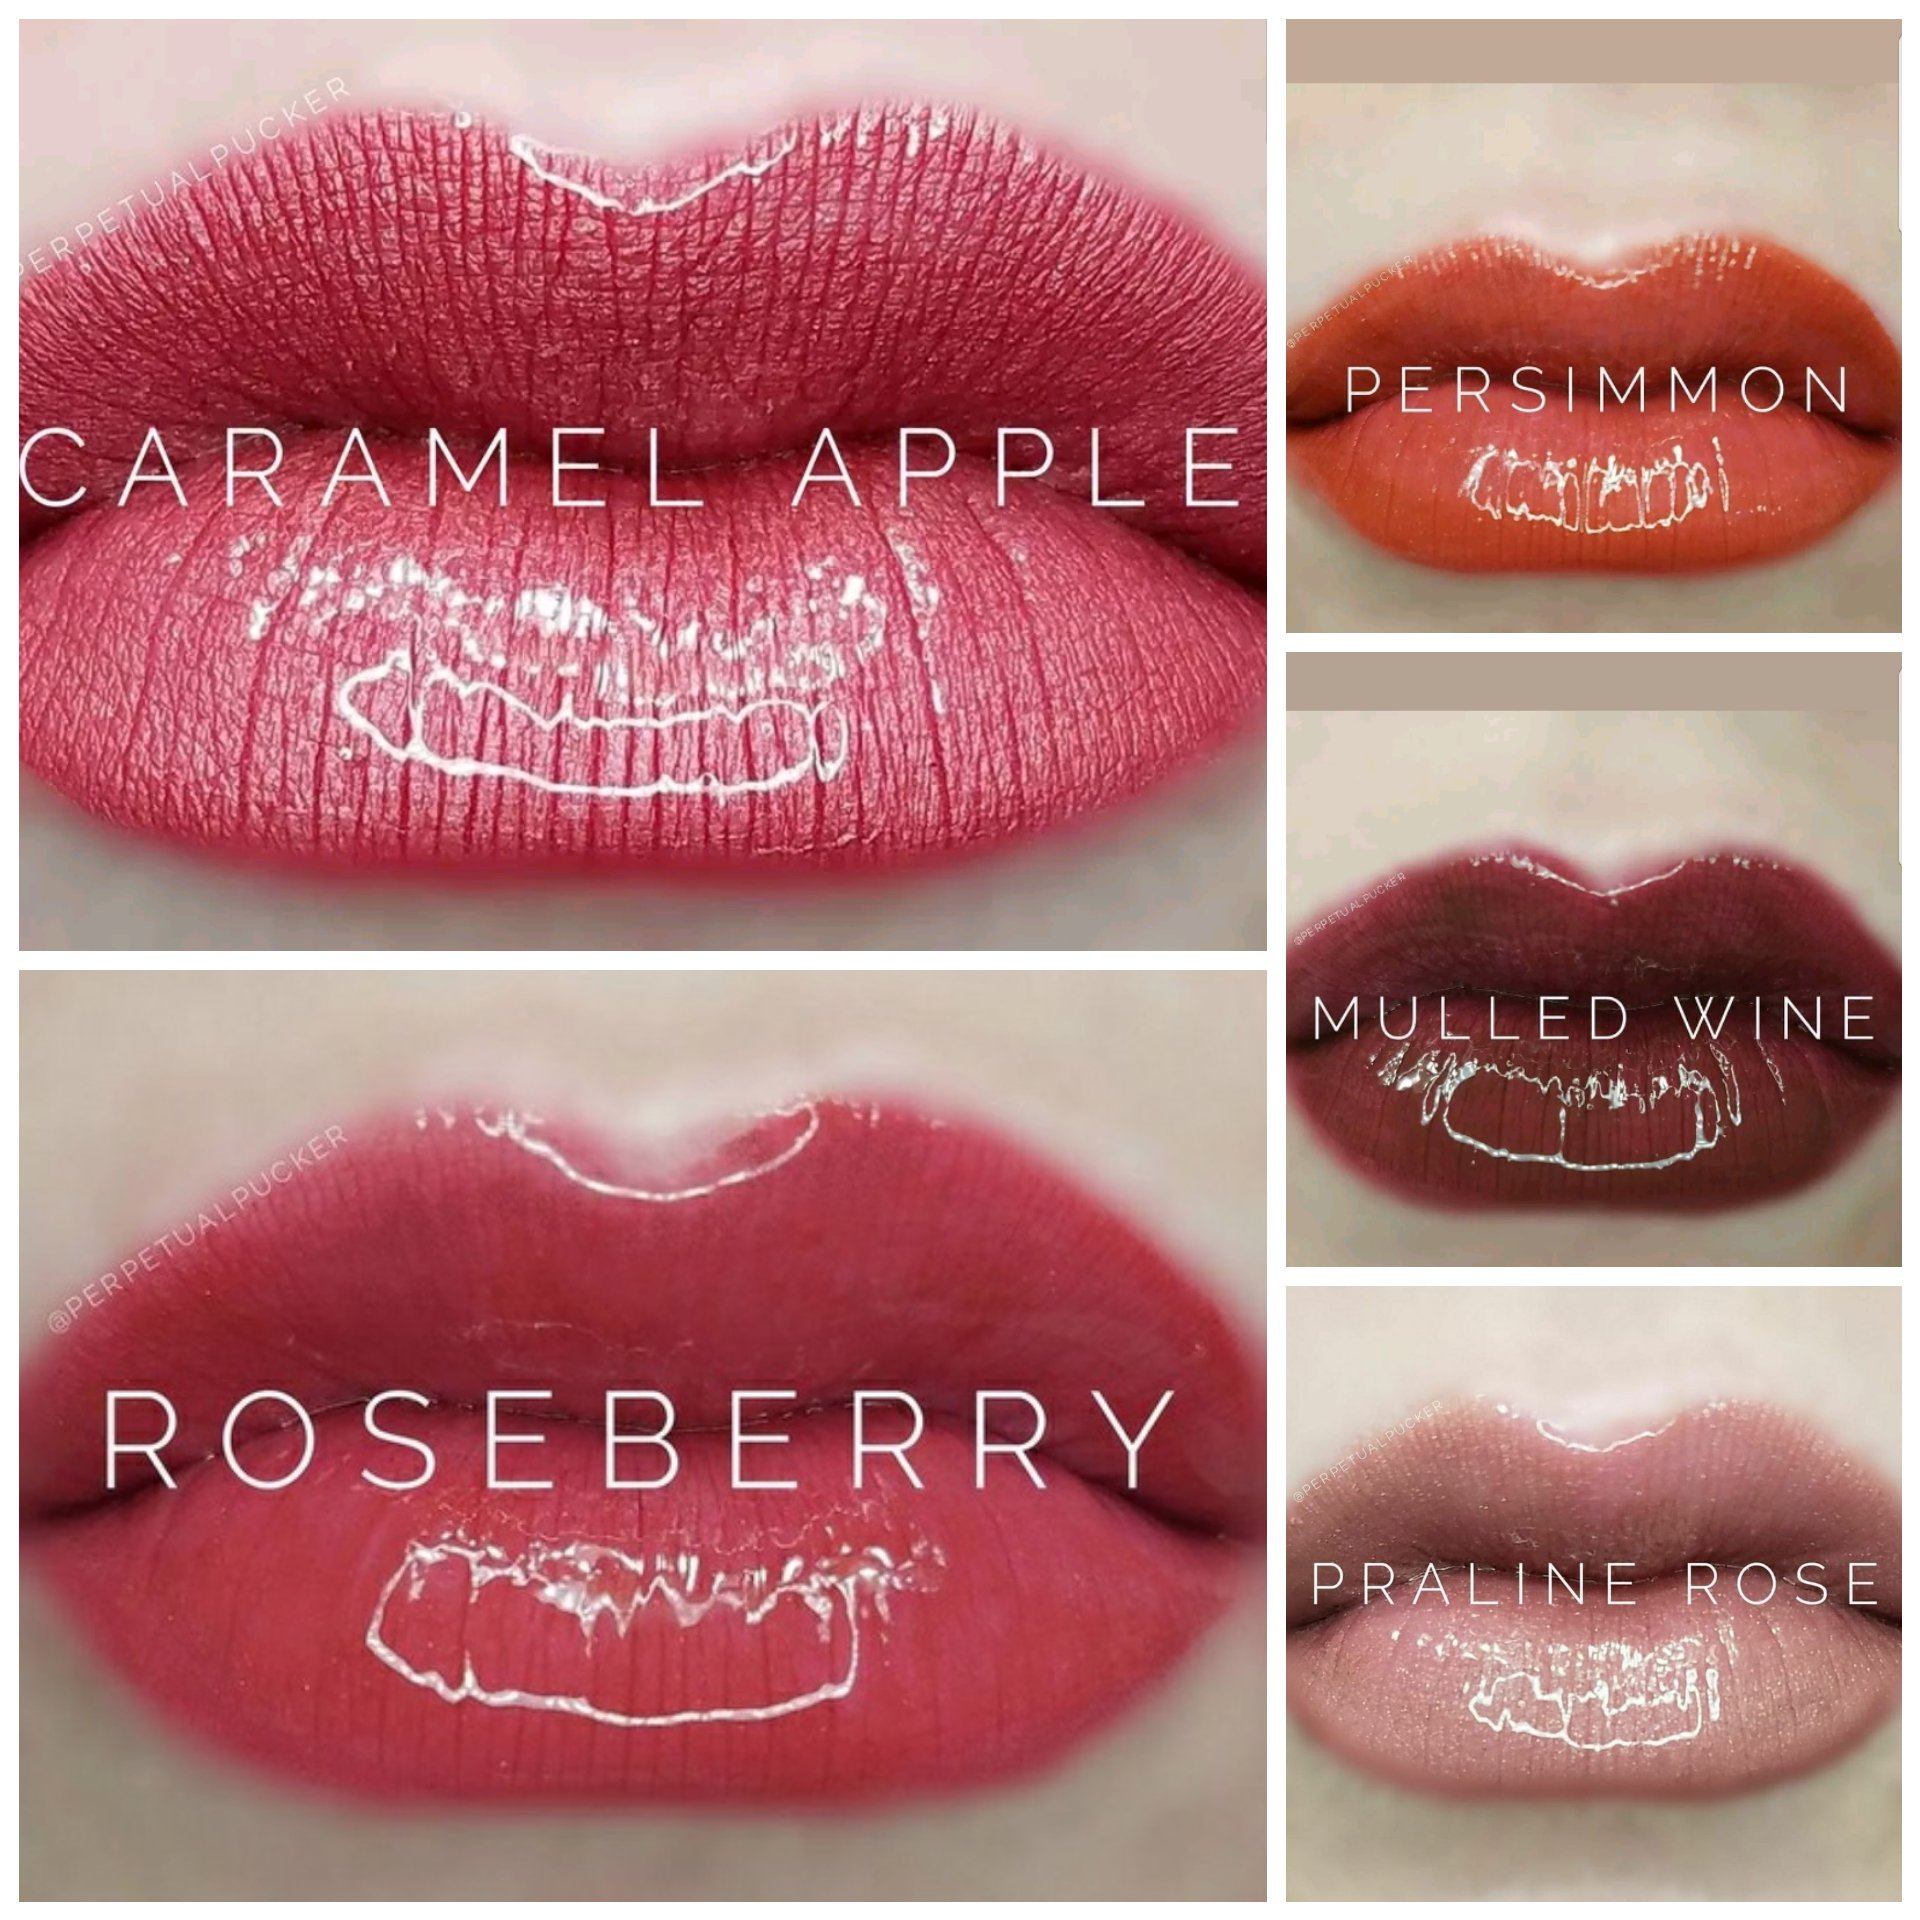 LIPSENSE BUNDLE 5 COLORS:1 ROSEBERRY, 1 PRALINE ROSE,1 CARAMEL APPLE, 1 PERSIMMON AND 1 MULLED WINE